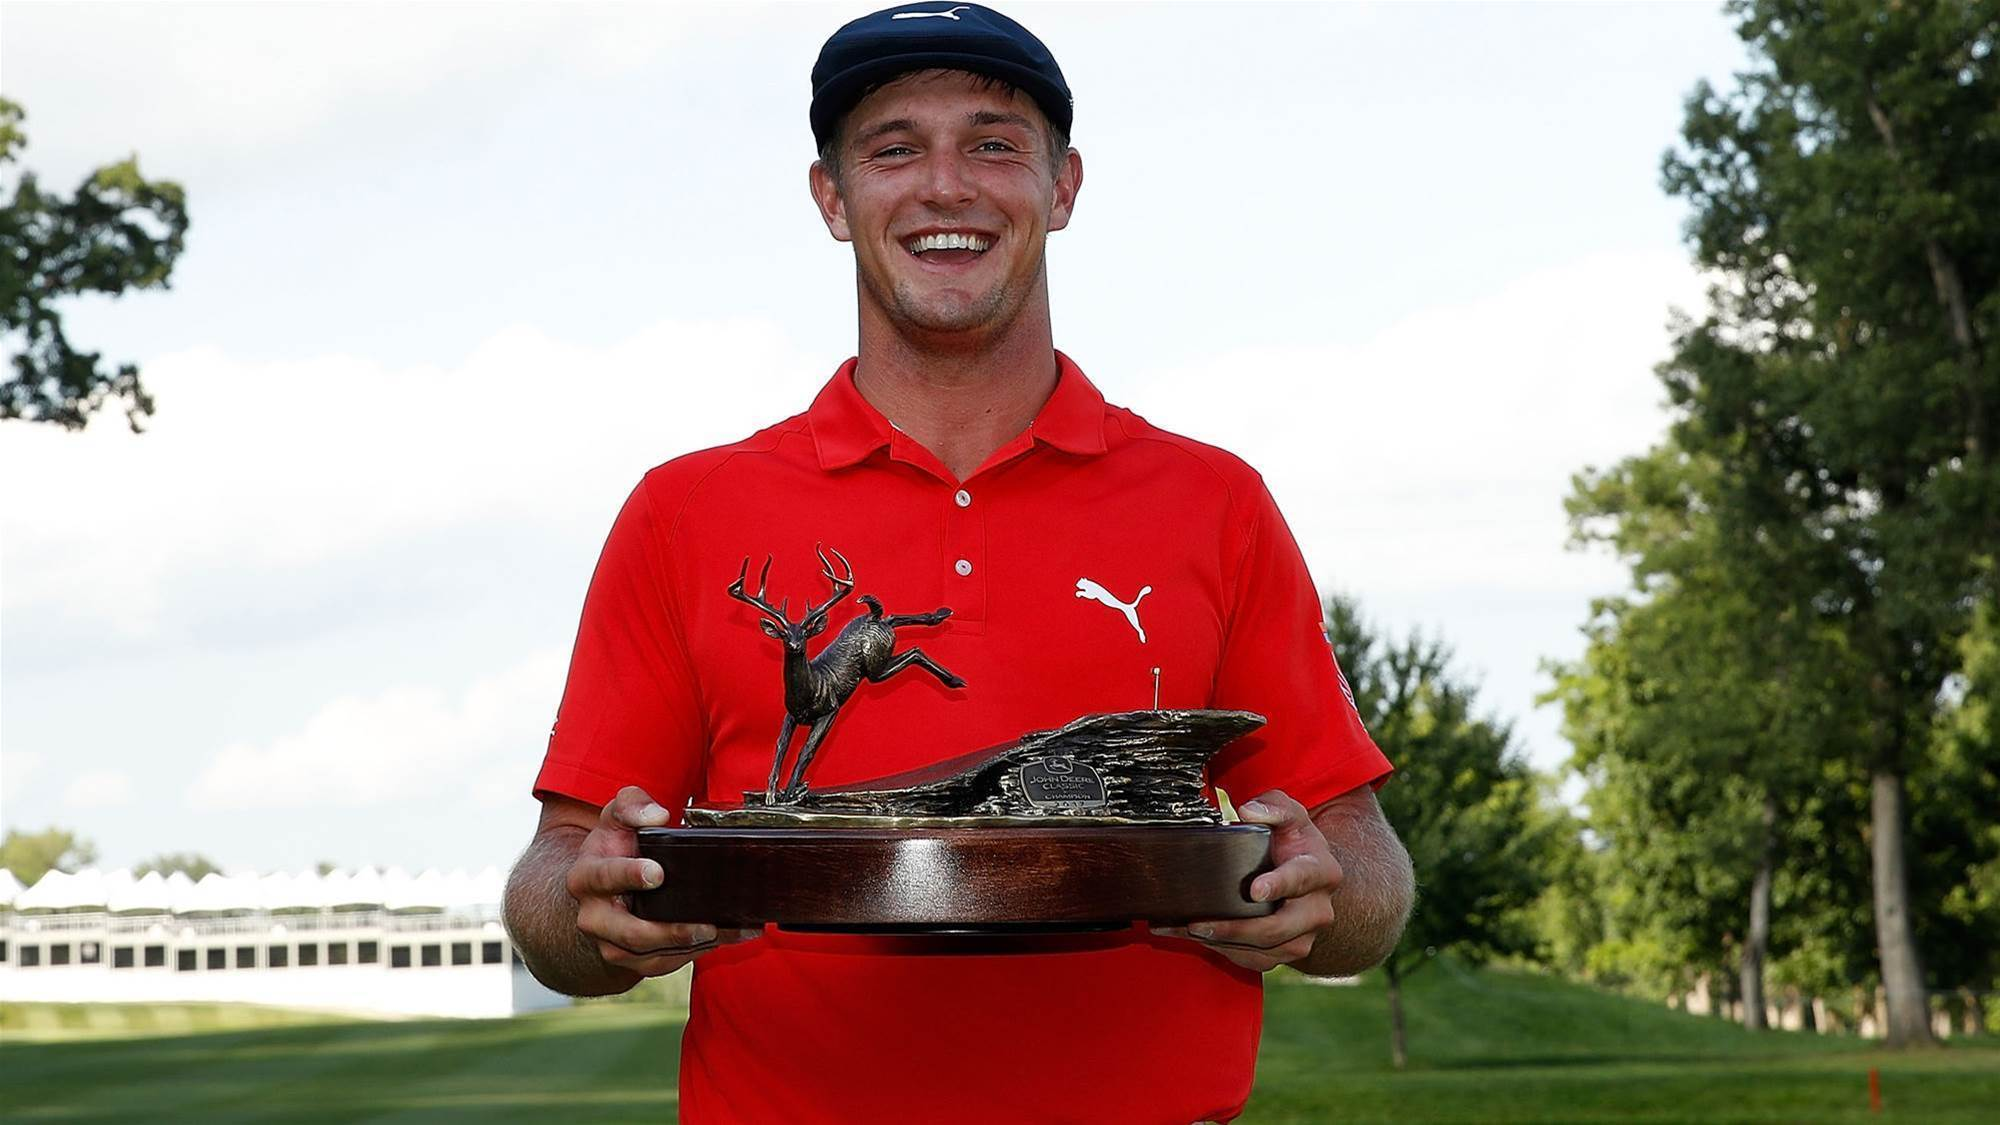 PGA TOUR: Emotional DeChambeau secures maiden victory and final Open spot